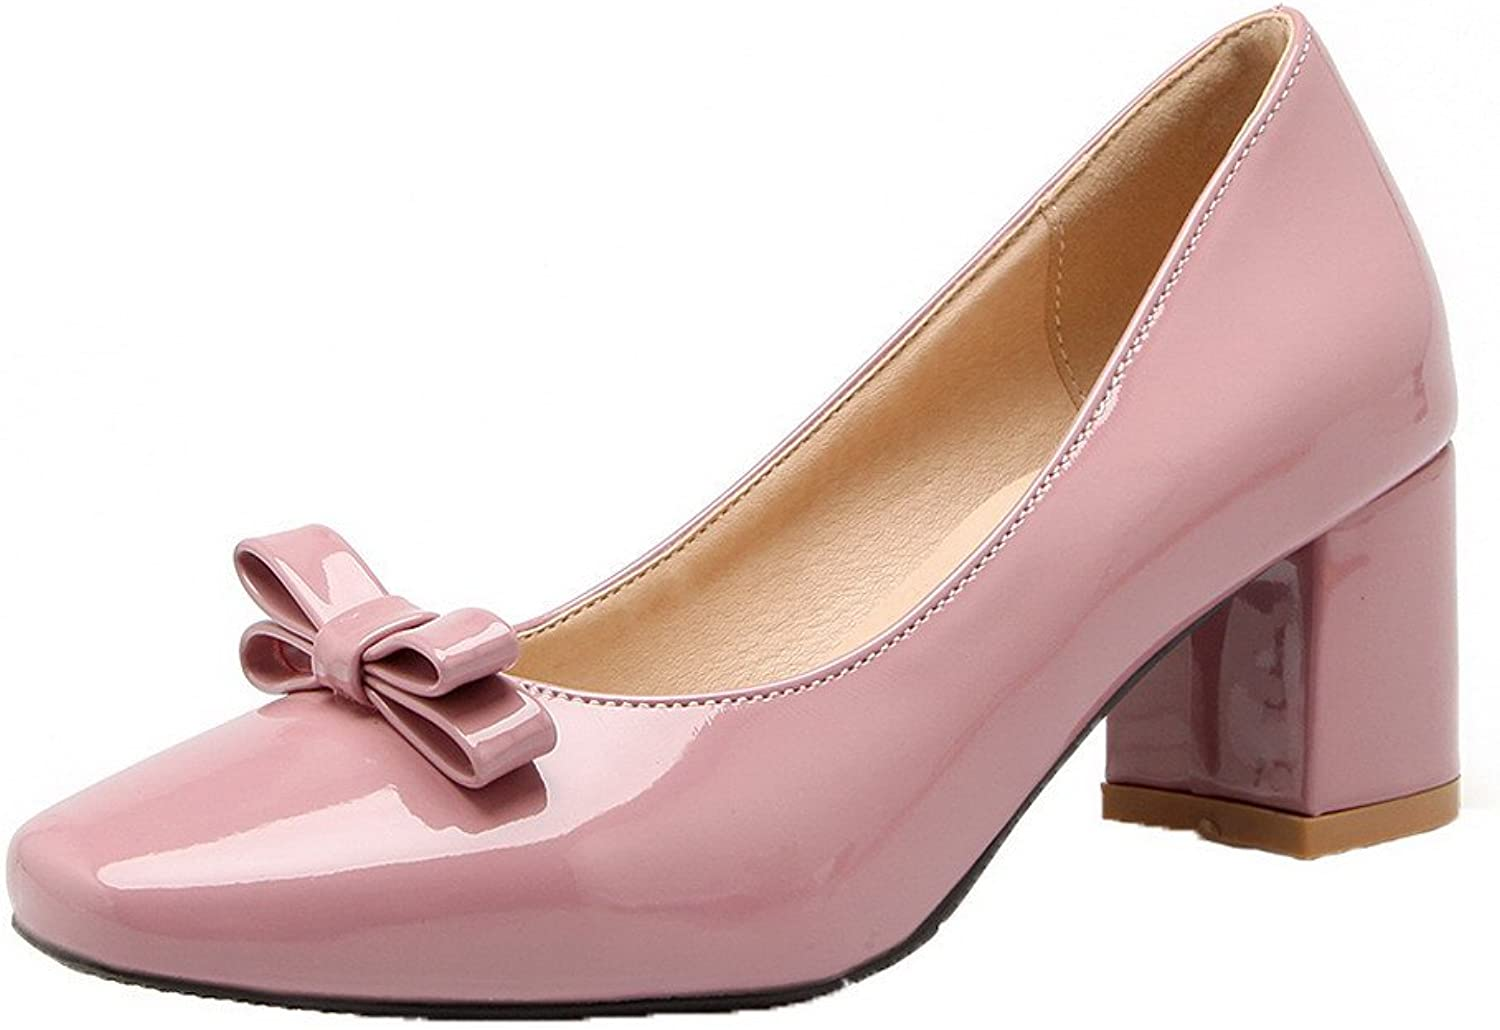 WeiPoot Women's Patent Leather Square Toe Kitten-Heels Pull-On Solid Pumps-shoes